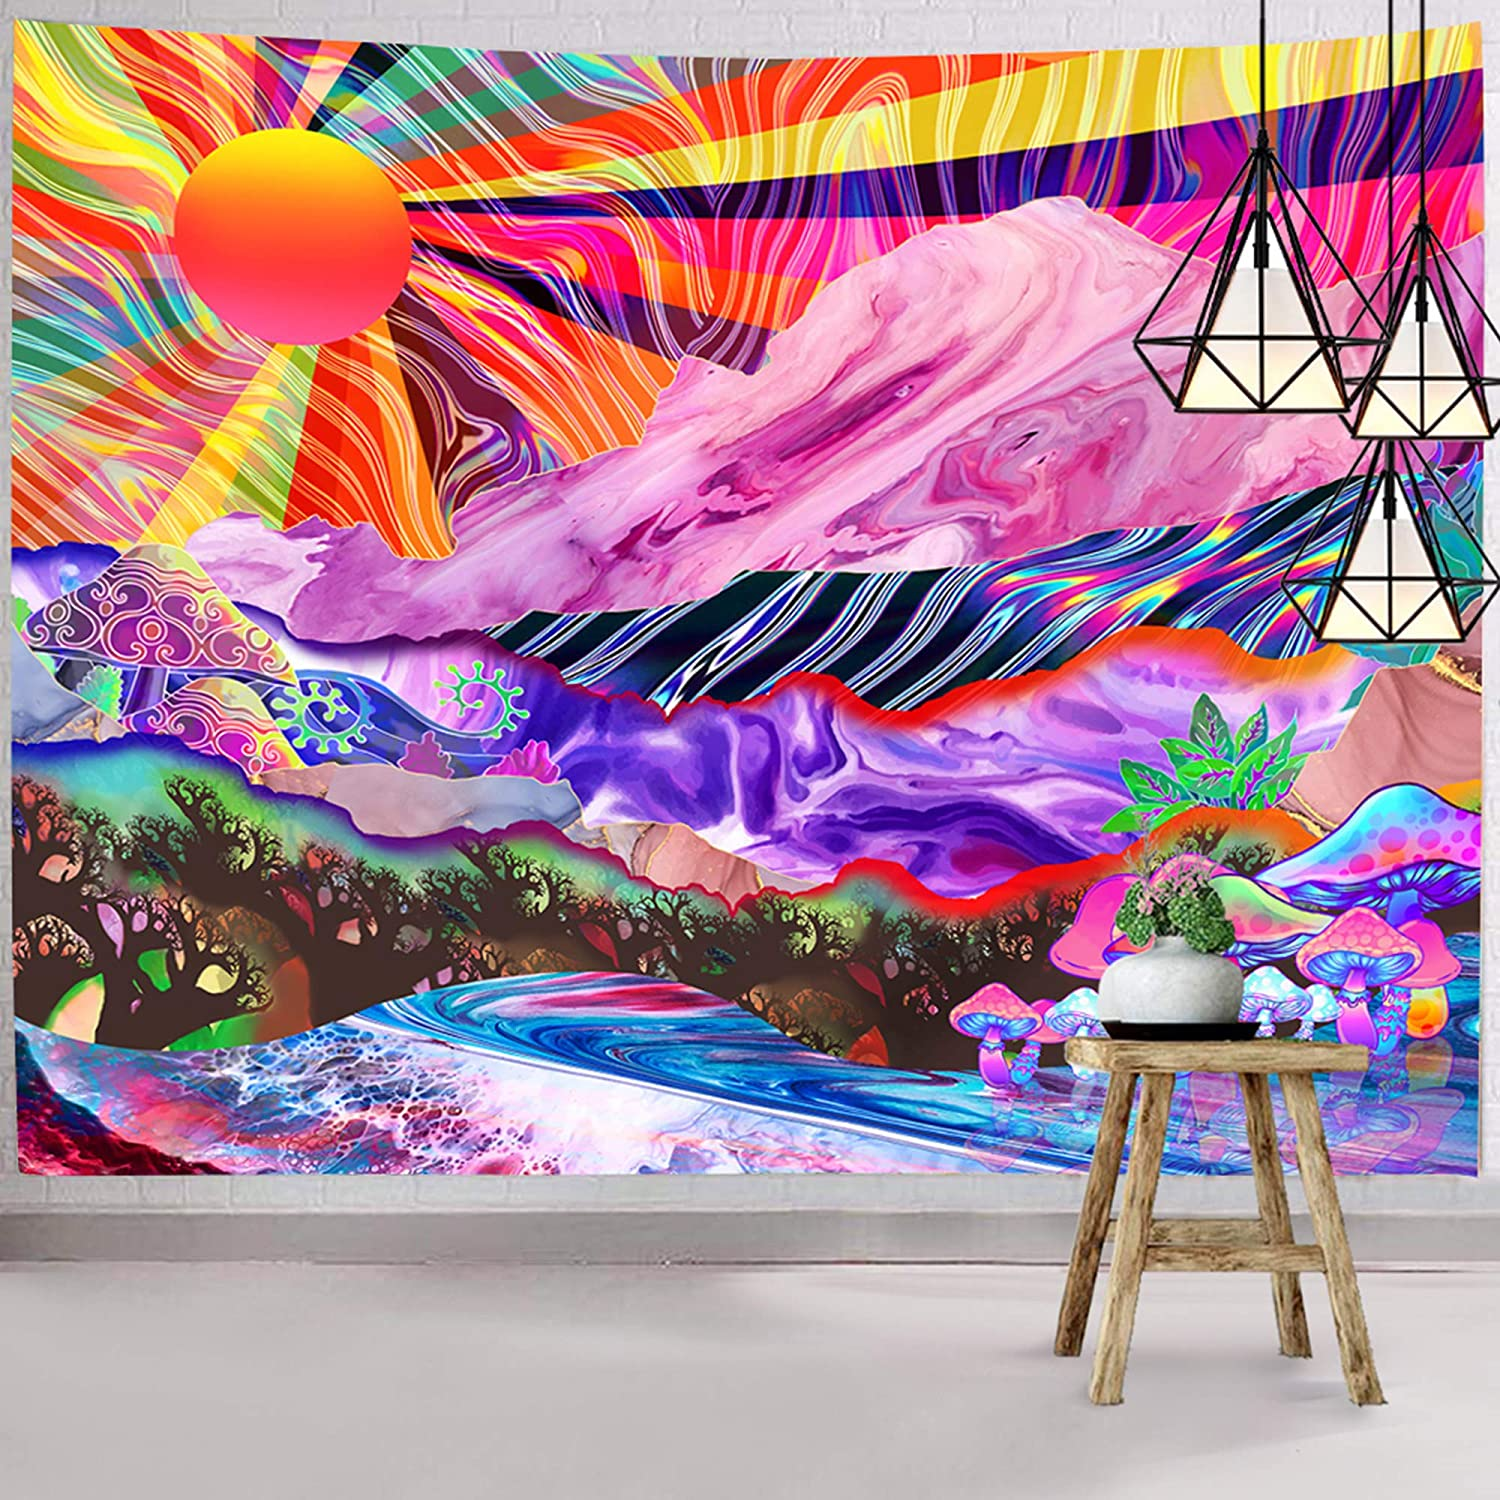 Hexagram Trippy Mountain Tapesetry Psychedelic Mushroom Tapestry Wall Hanging Hippie Colorful Nature Landscape Wall Tapestry for Bedroom Living Room Dorm Home Decoration